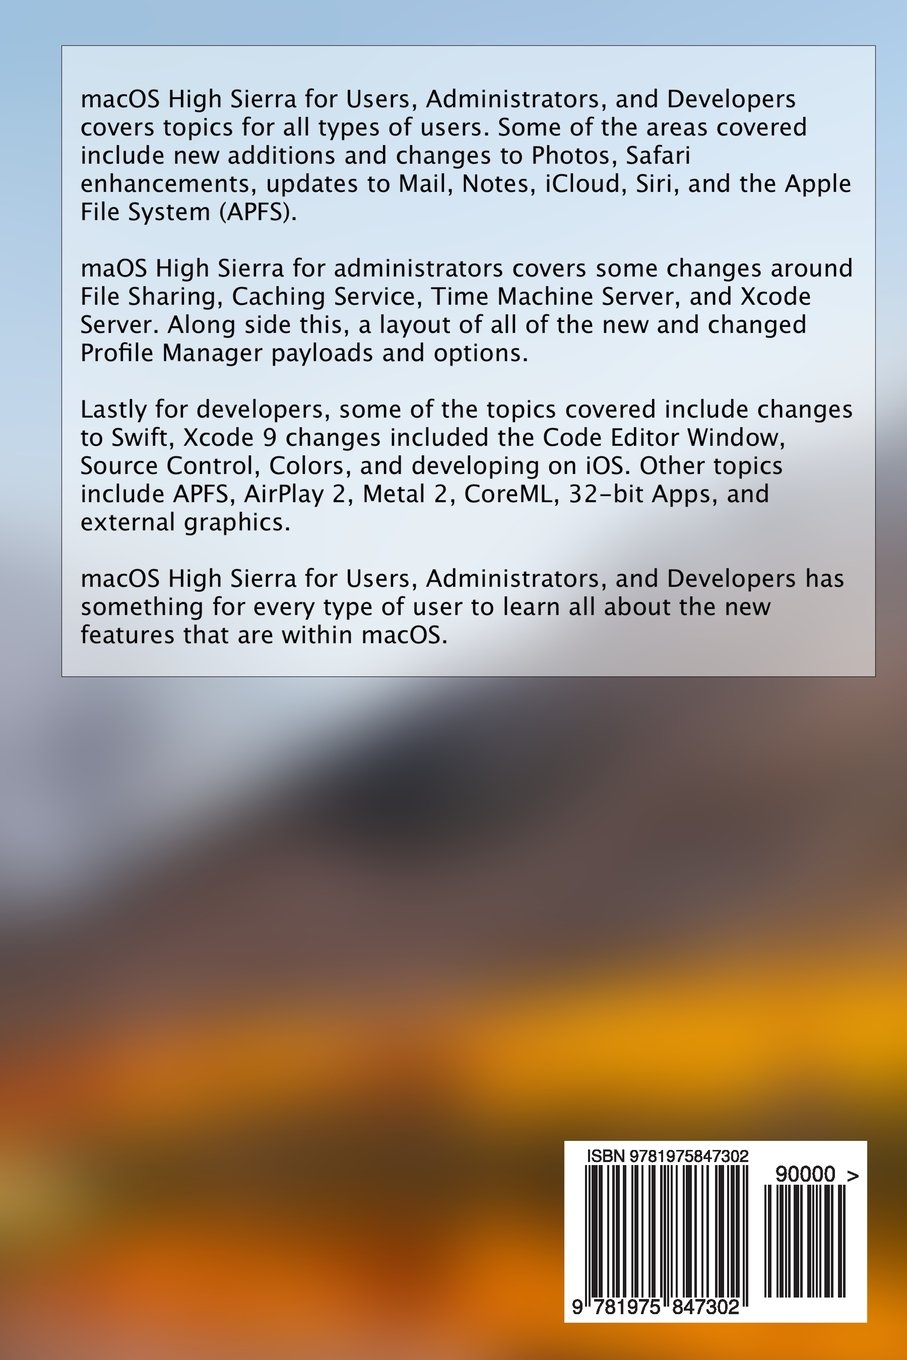 macOS High Sierra for Users, Administrators and Developers